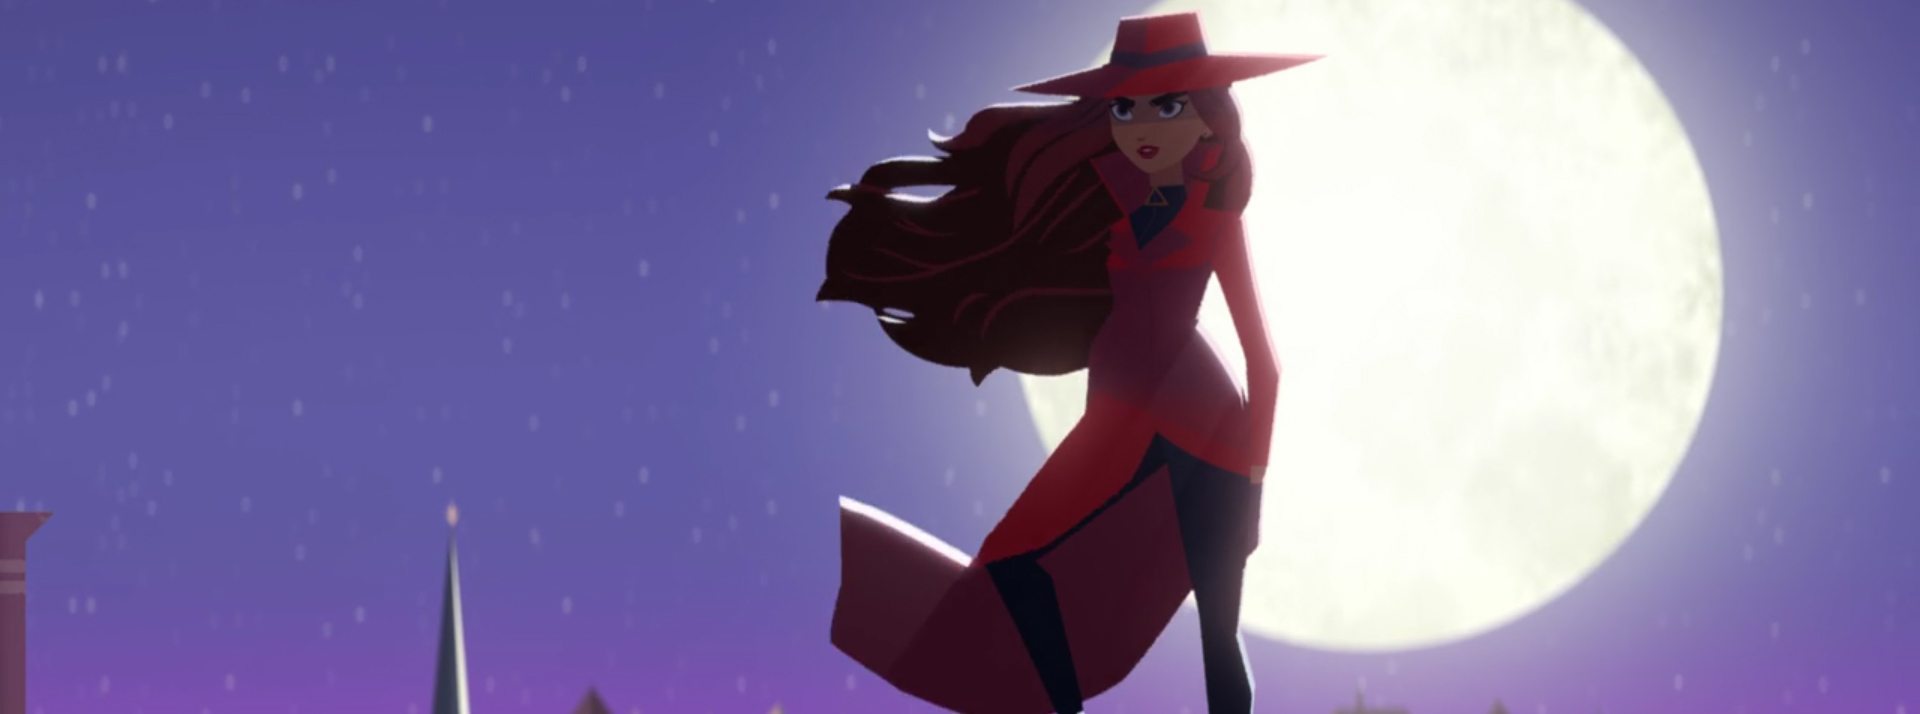 Carmen Sandiego: Season One. Image Credit: Netflix.